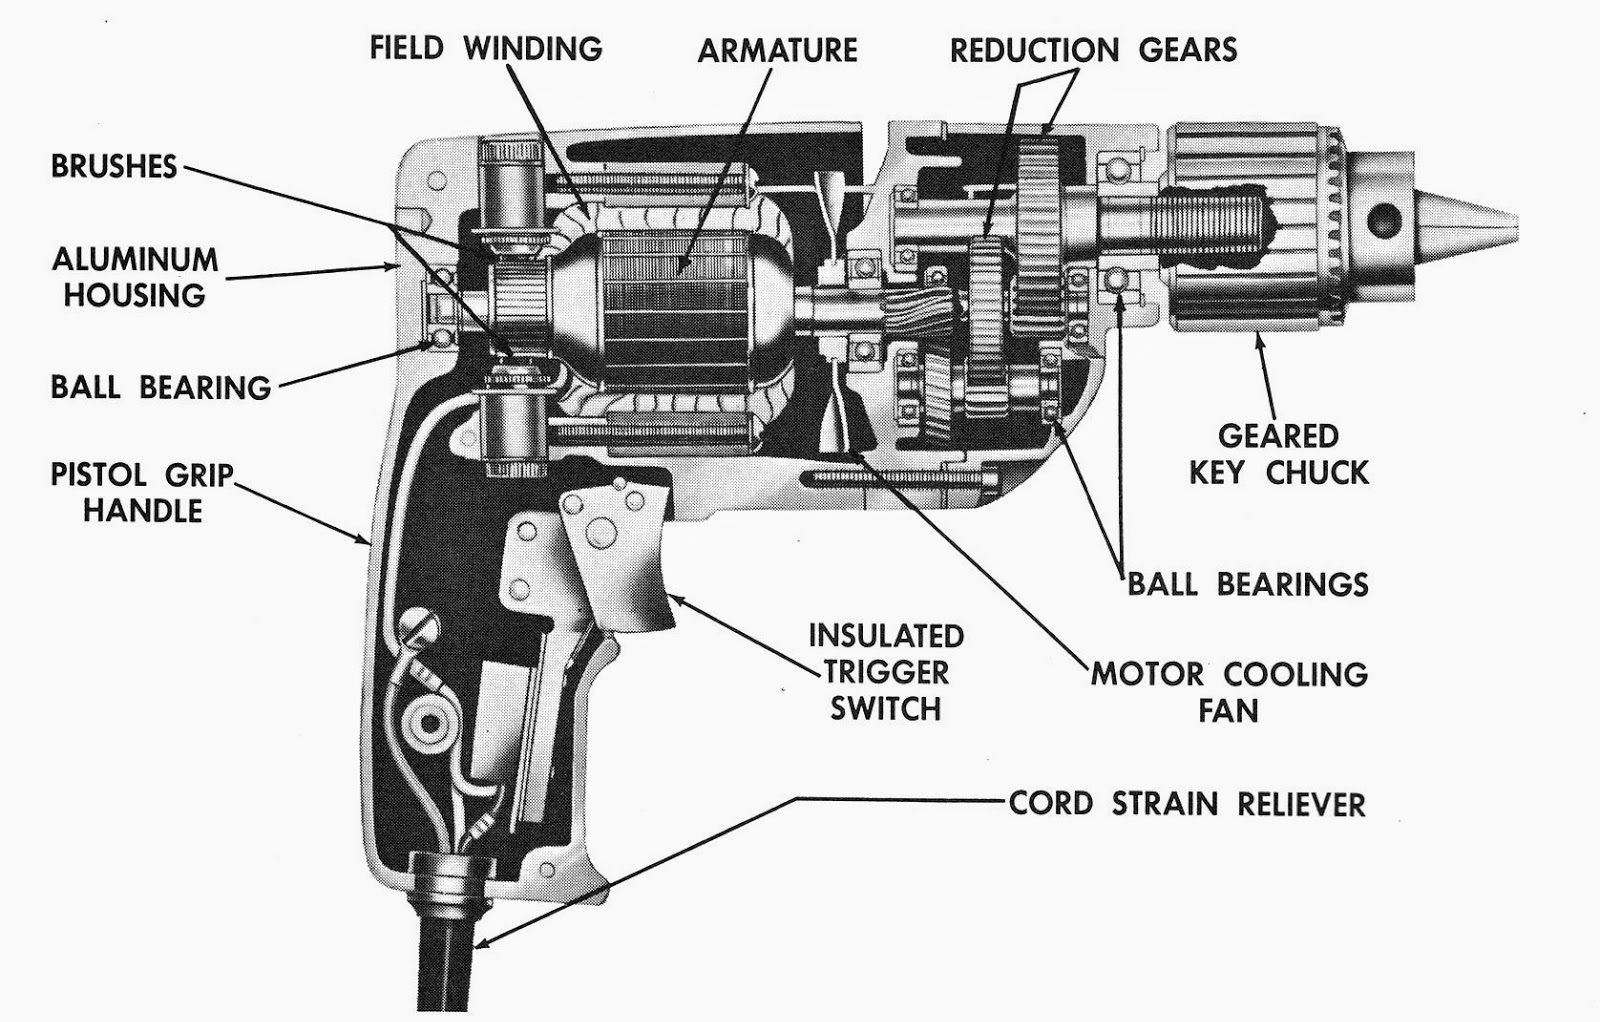 small resolution of image result for parts of an electric drill drill electric drill press hole